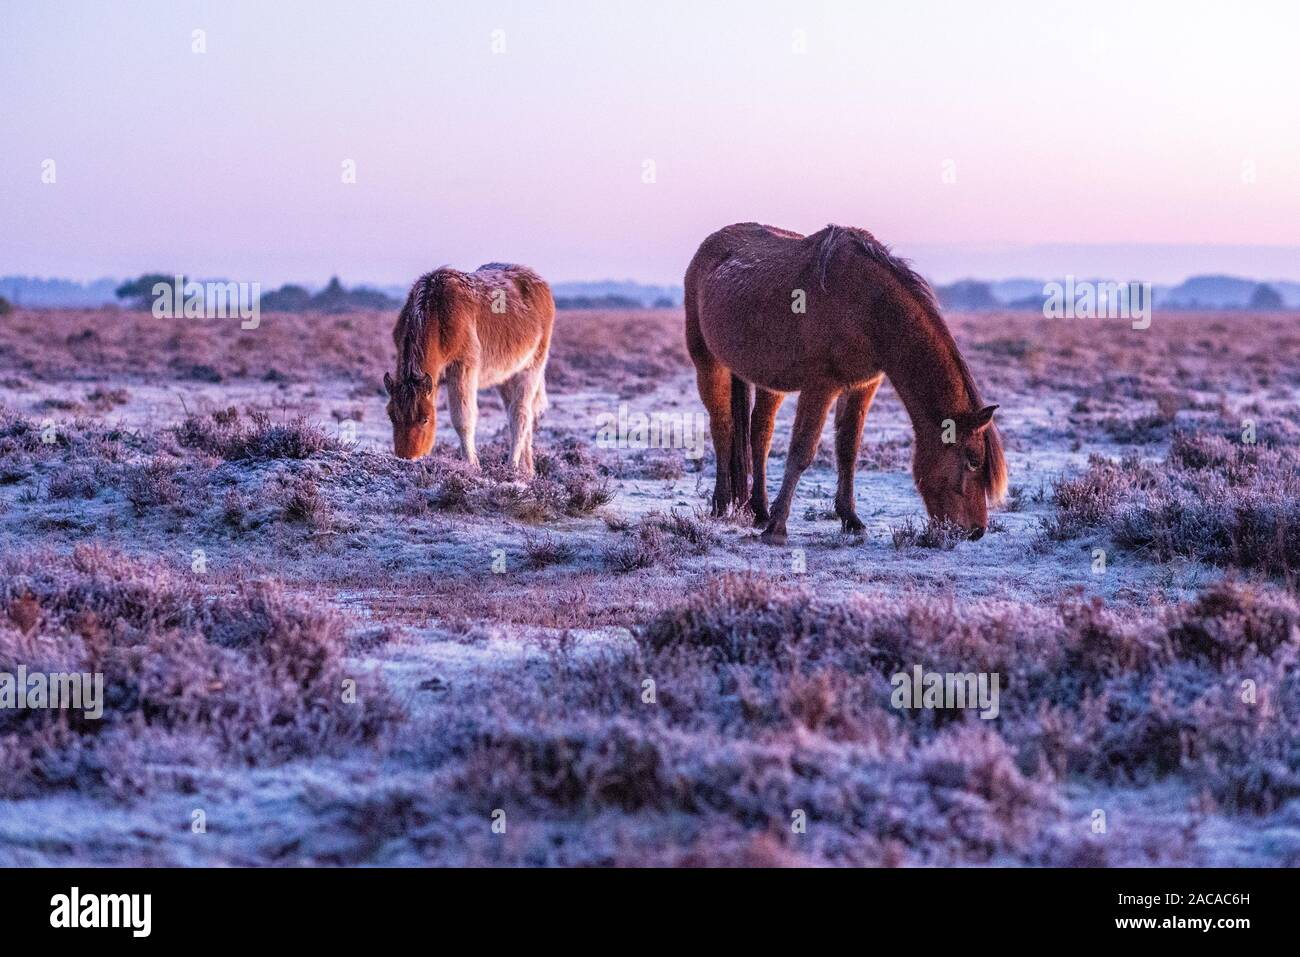 Godshill, New Forest, Hampshire, UK. 2nd December 2019, Weather: Meteorological winter is off to a cold and frosty start in The New Forest National Park with temperatures dropping to minus 3 by early morning. Hardy New Forest ponies graze on the frozen grass at sunrise. Credit: Paul Biggins/Alamy Live News Stock Photo